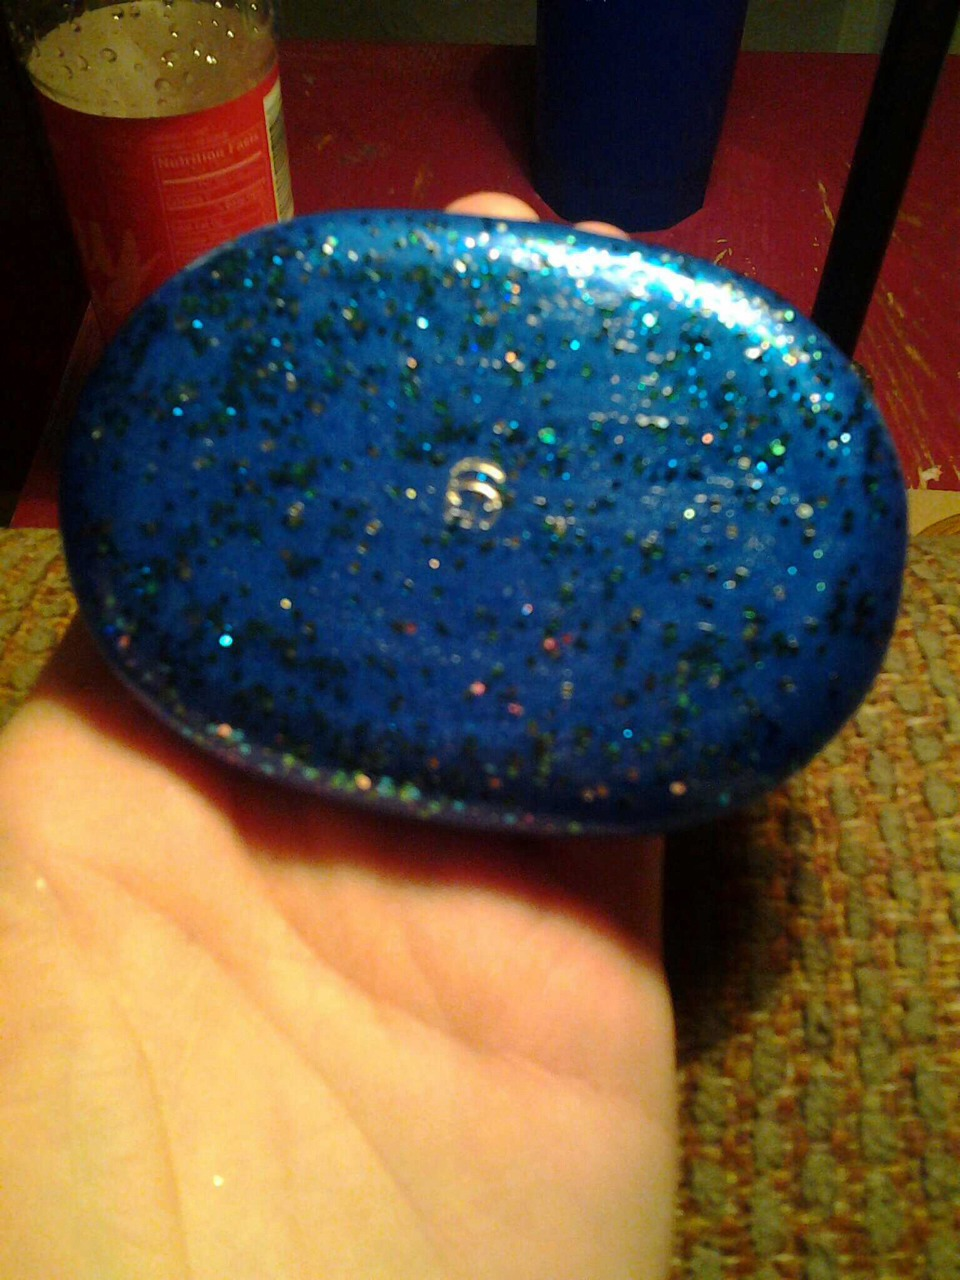 First I took one of my old compacts and cleaned it out and painted the outside of it with my daughters favorite nail polish